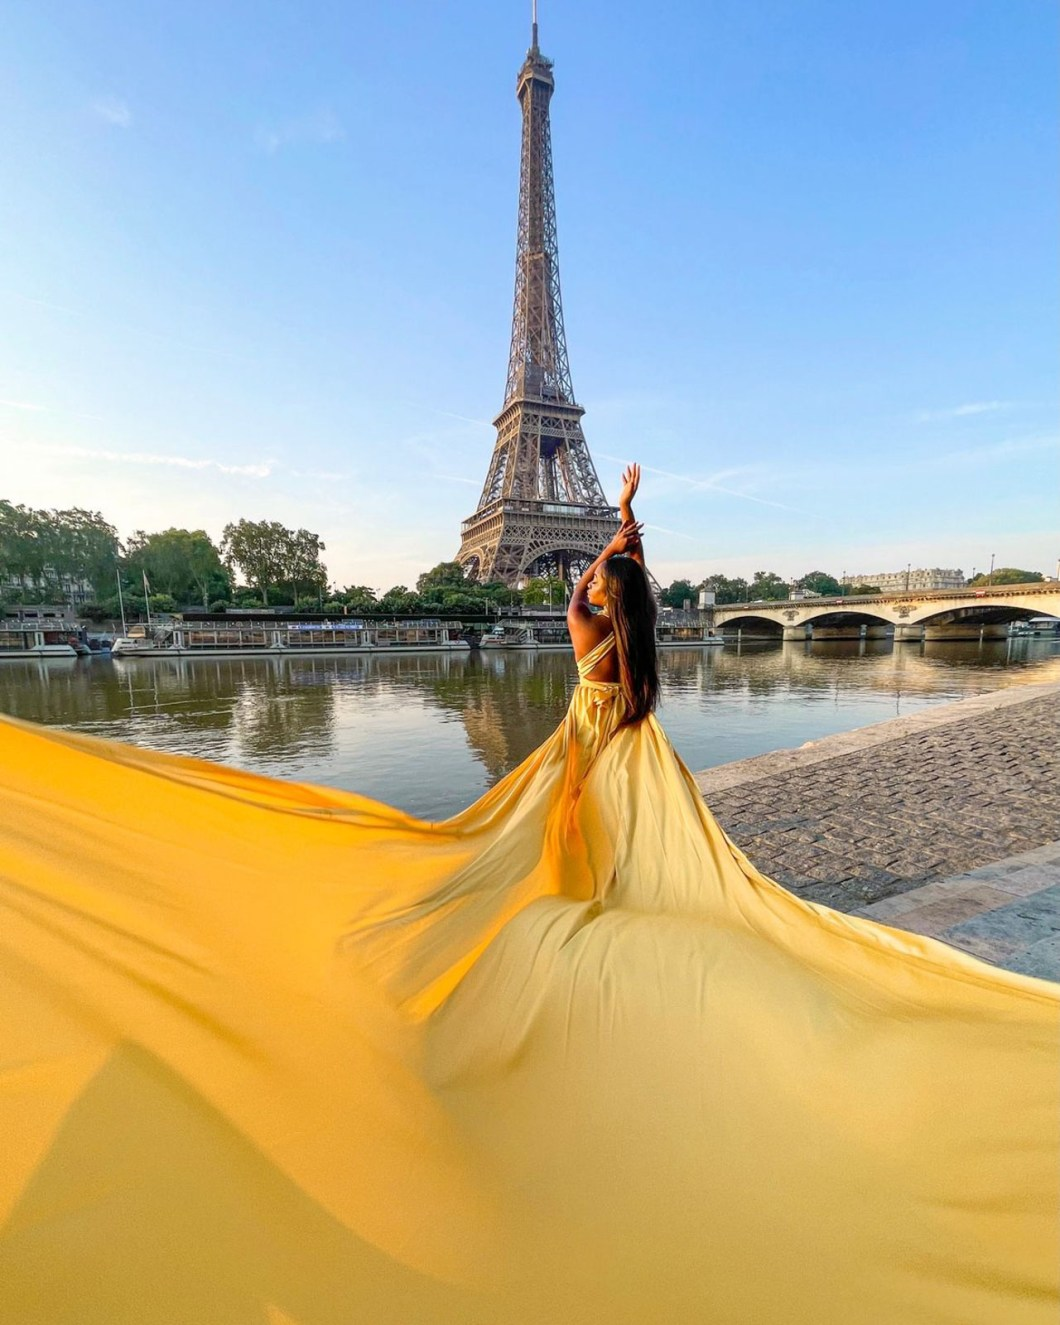 Flying Dress Photoshoot at the Eiffel Tower